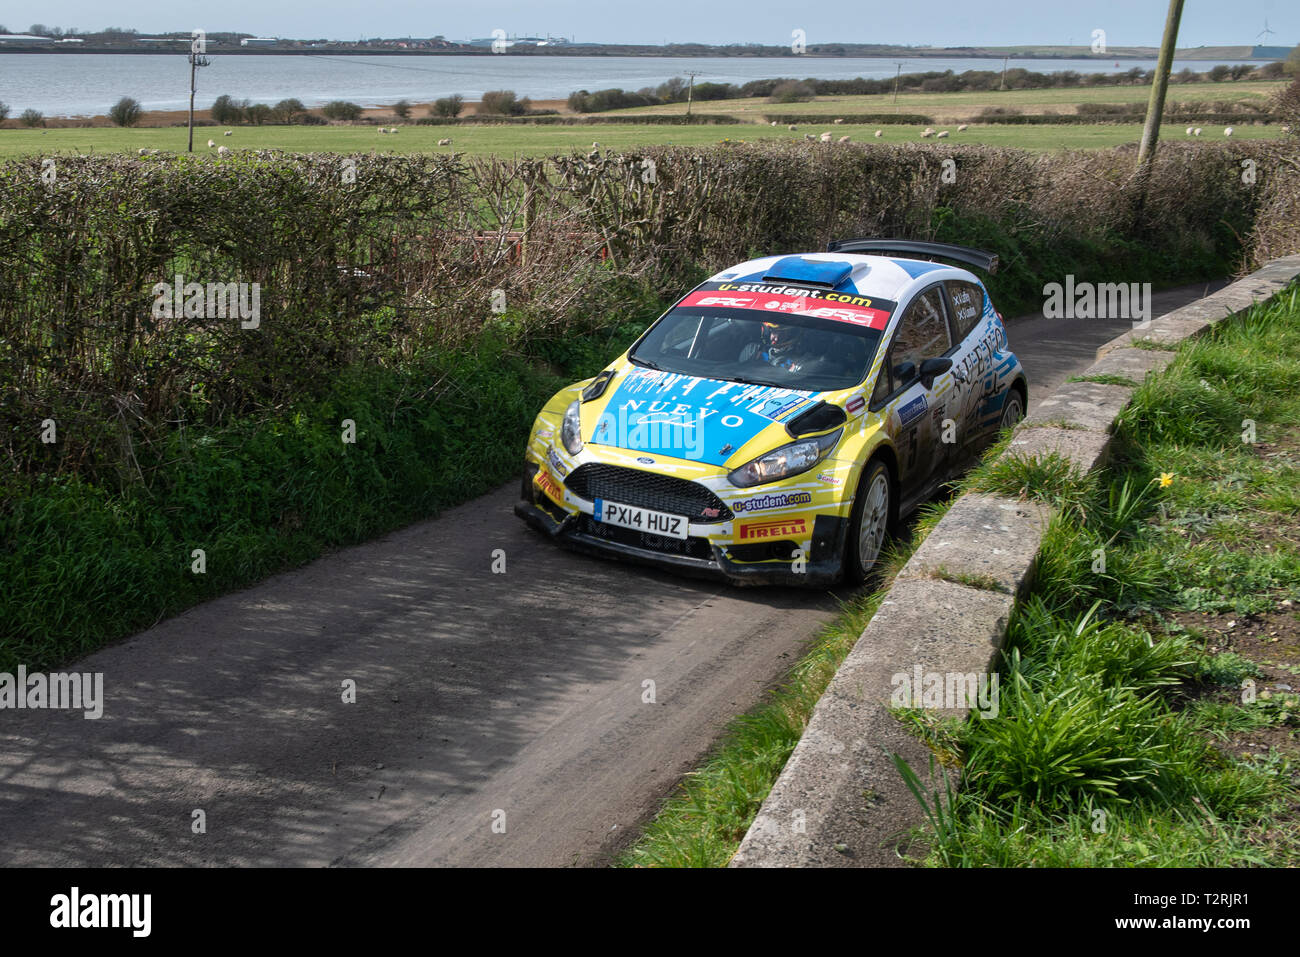 Alex Laffrey in his Ford Fiesta R5 driving into second place overall in The Legend Fires North West Stages Rally 2019 - Stock Image